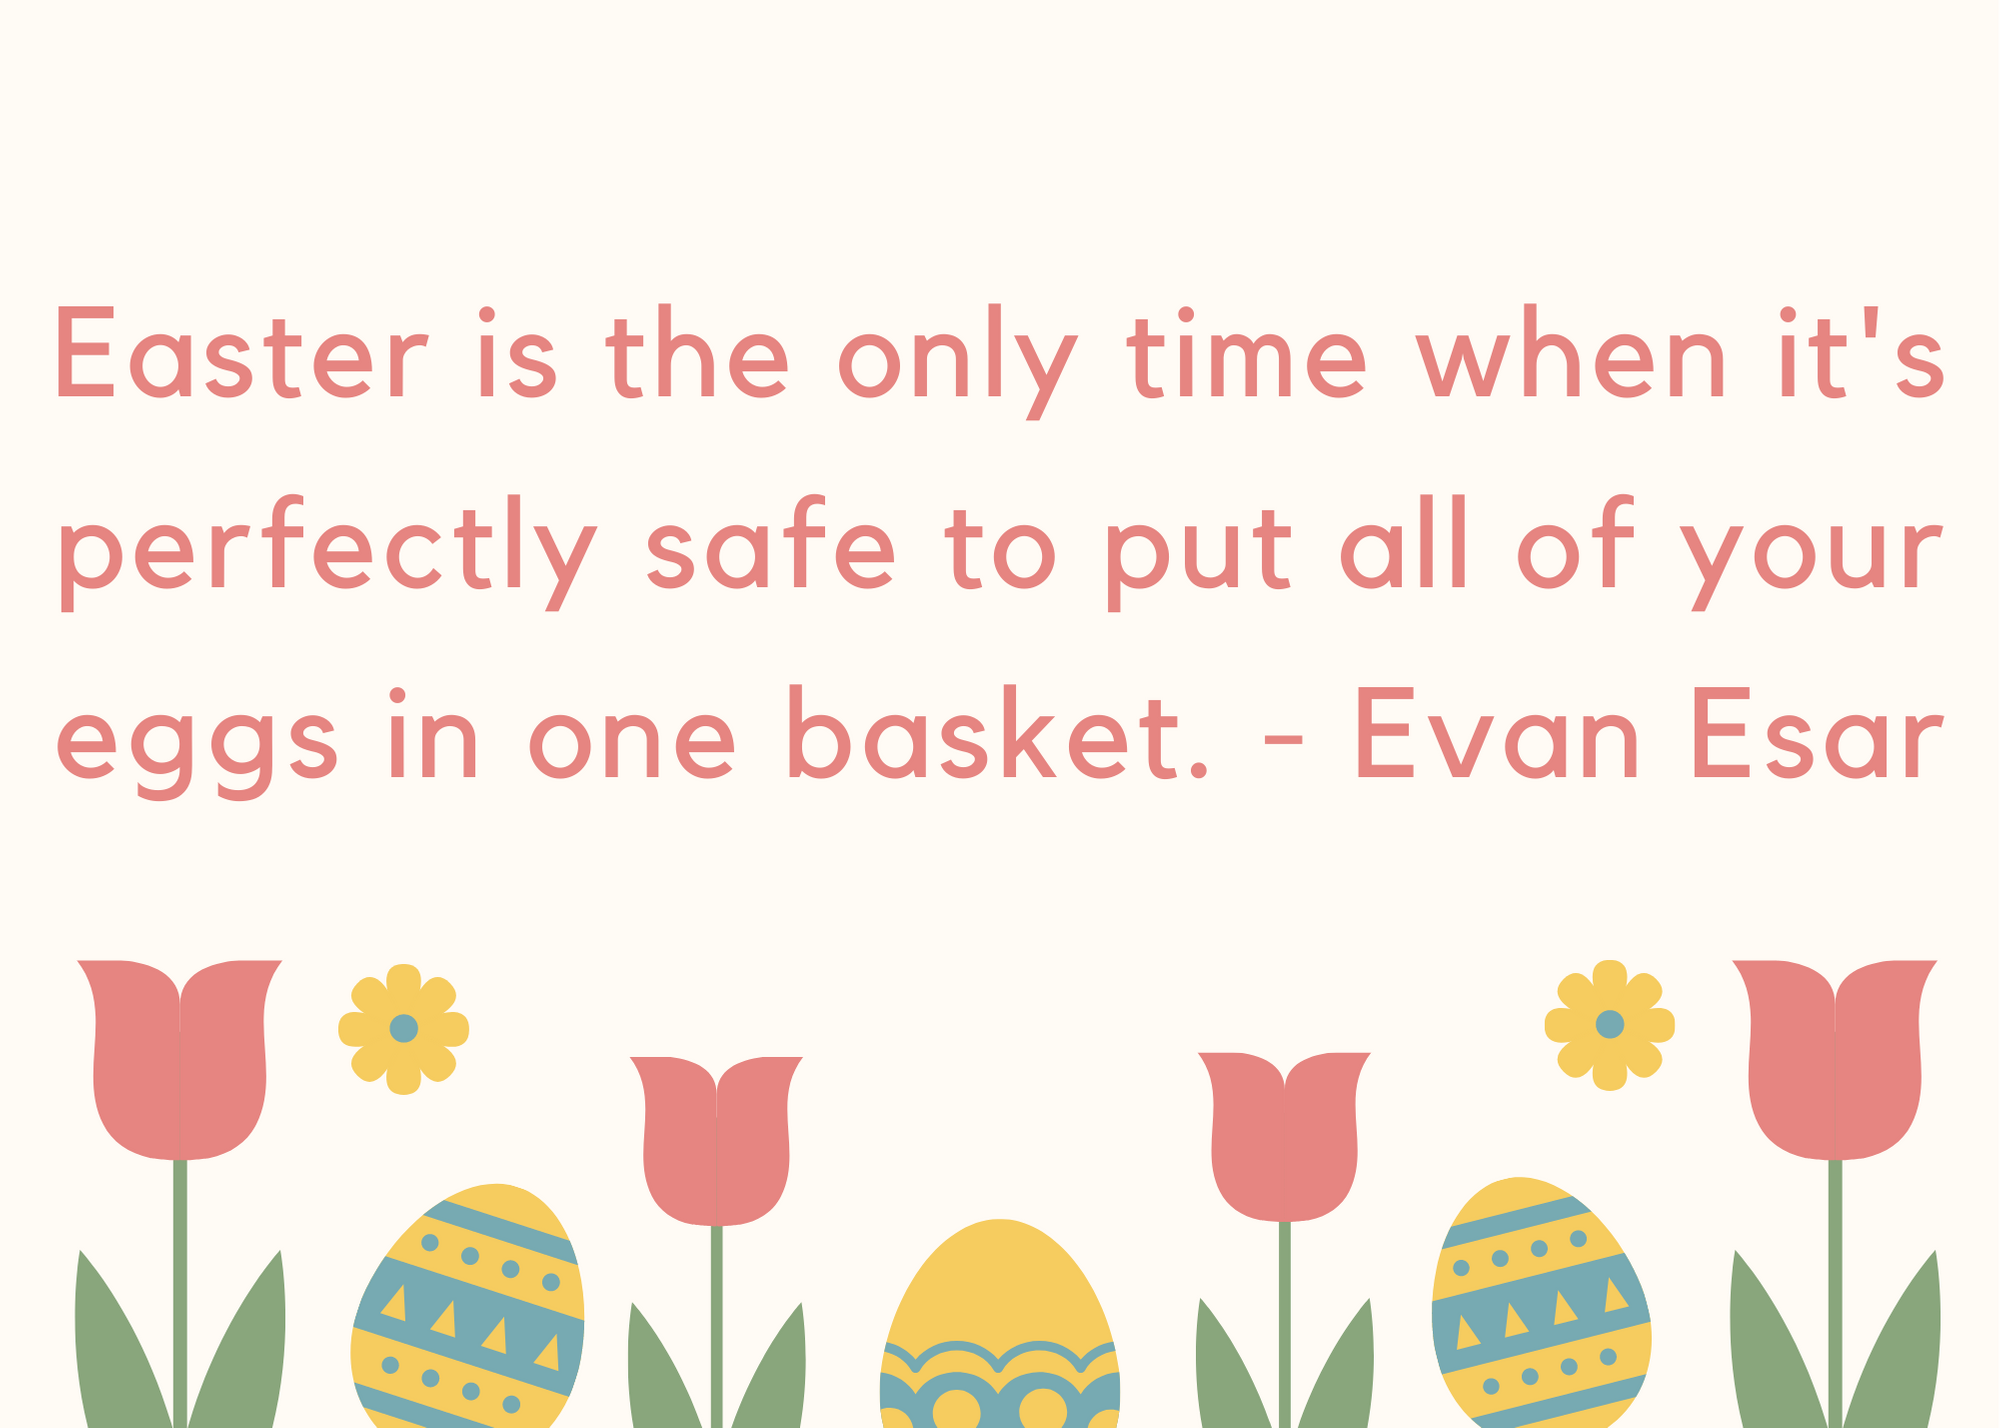 Easter is the only time when it's perfectly safe to put all of your eggs in one basket. - Evan Esar